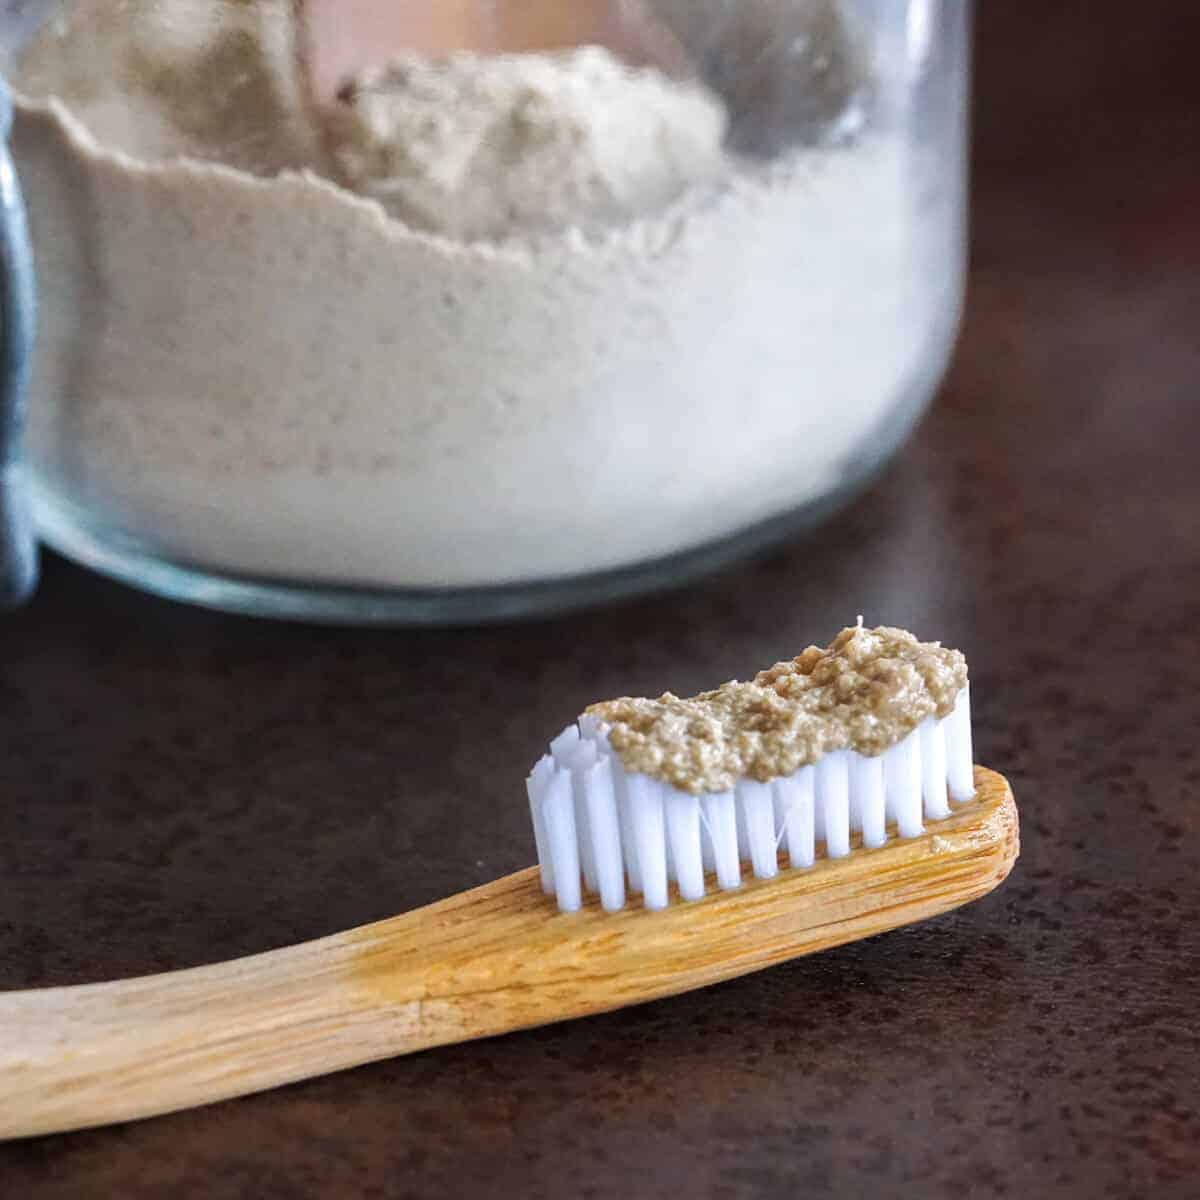 Closeup of tooth powder on a bamboo toothbrush. In the background theres a glass jar filled with the homemade tooth powder.